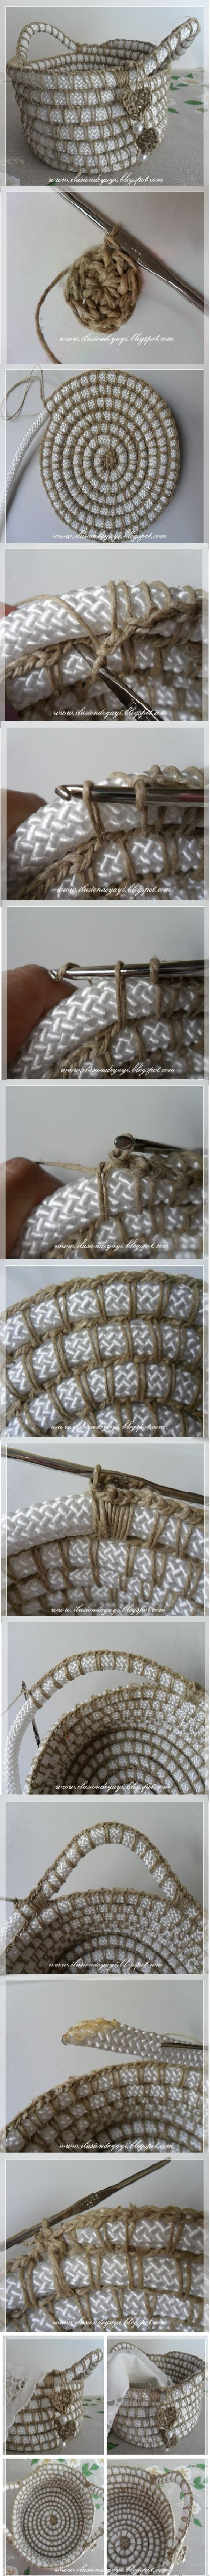 Crochet and Rope Basket - Tutorial ❥ 4U // hf